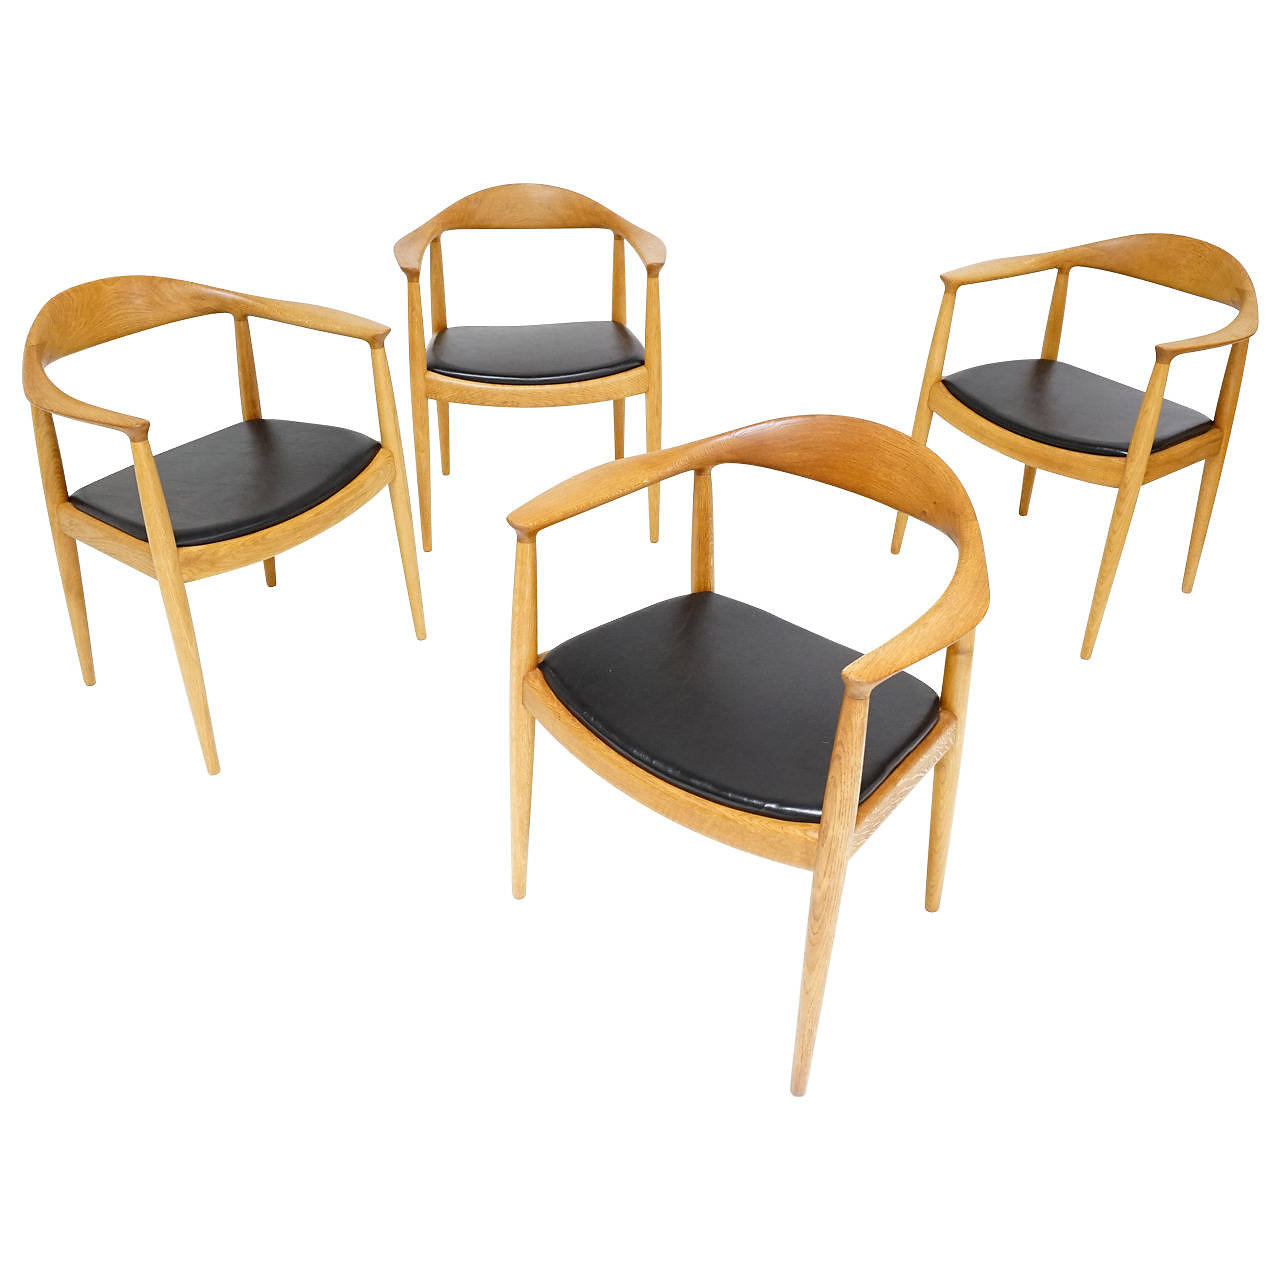 The chair round chair by hans wegner - Early Set Of The Classic The Chair Or Round Chair In Oak With The Early Finger Joints By Hans Wegner For Danish Cabinet Maker Johannes Hansen